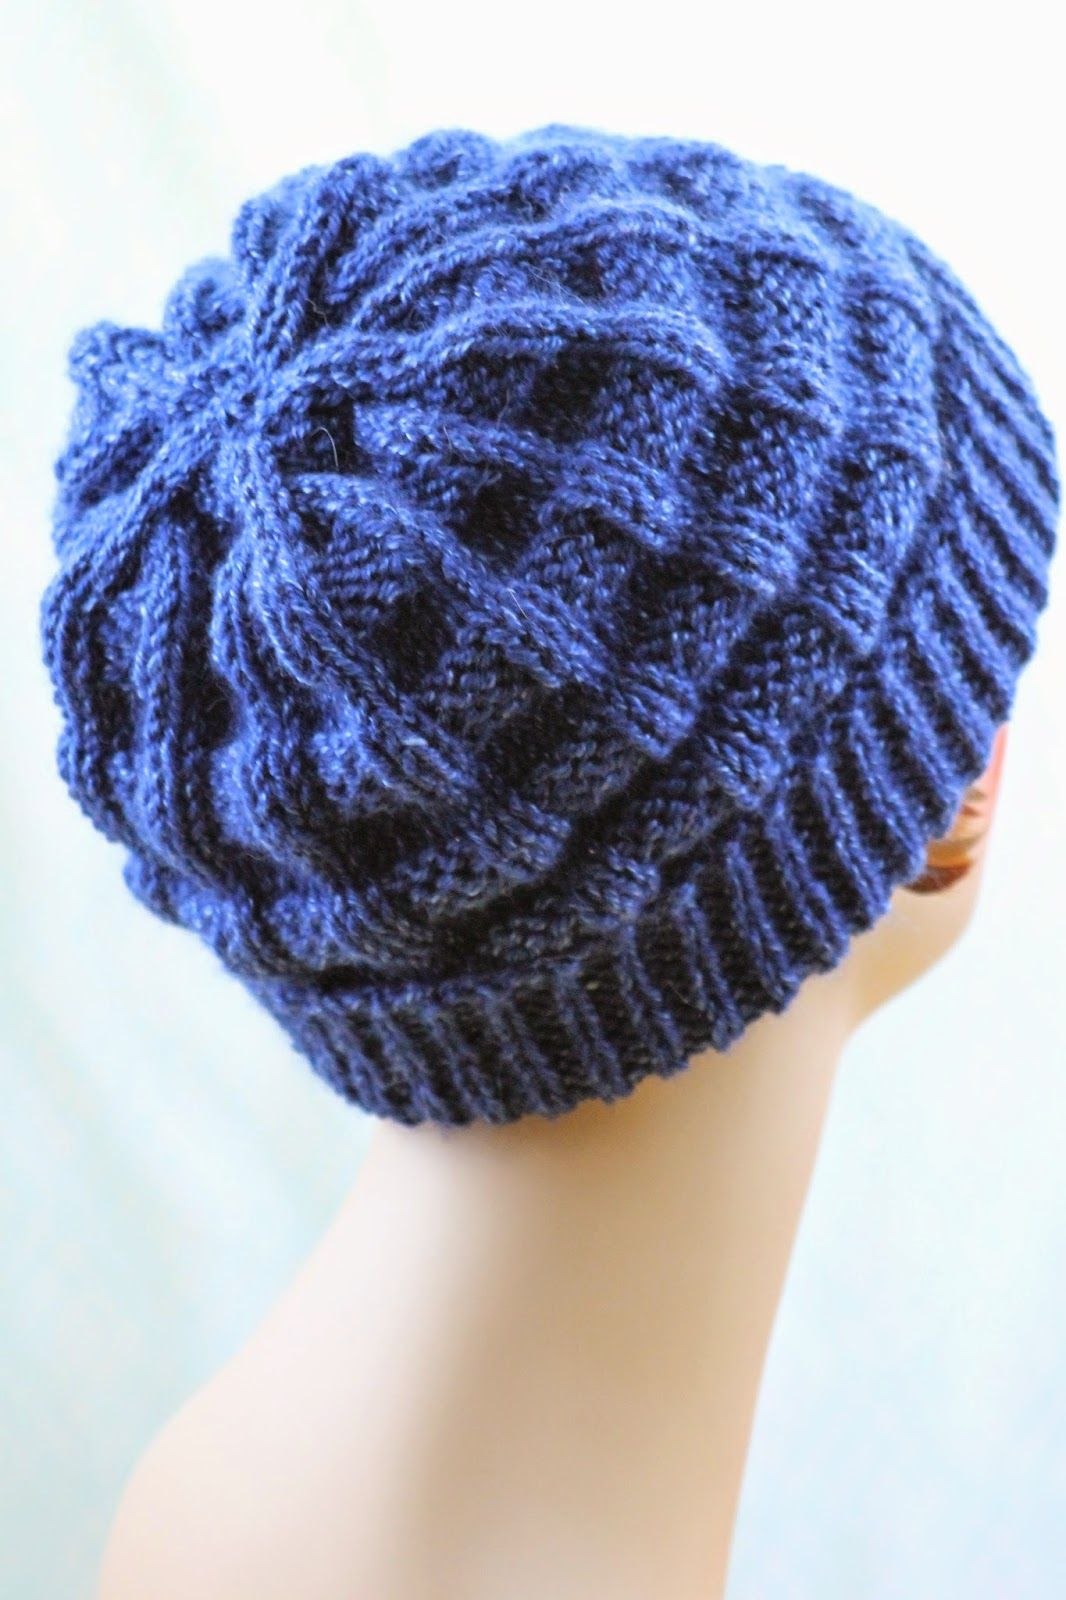 Pattern Gallery - Head Balls to the Walls Knits, A collection of ...